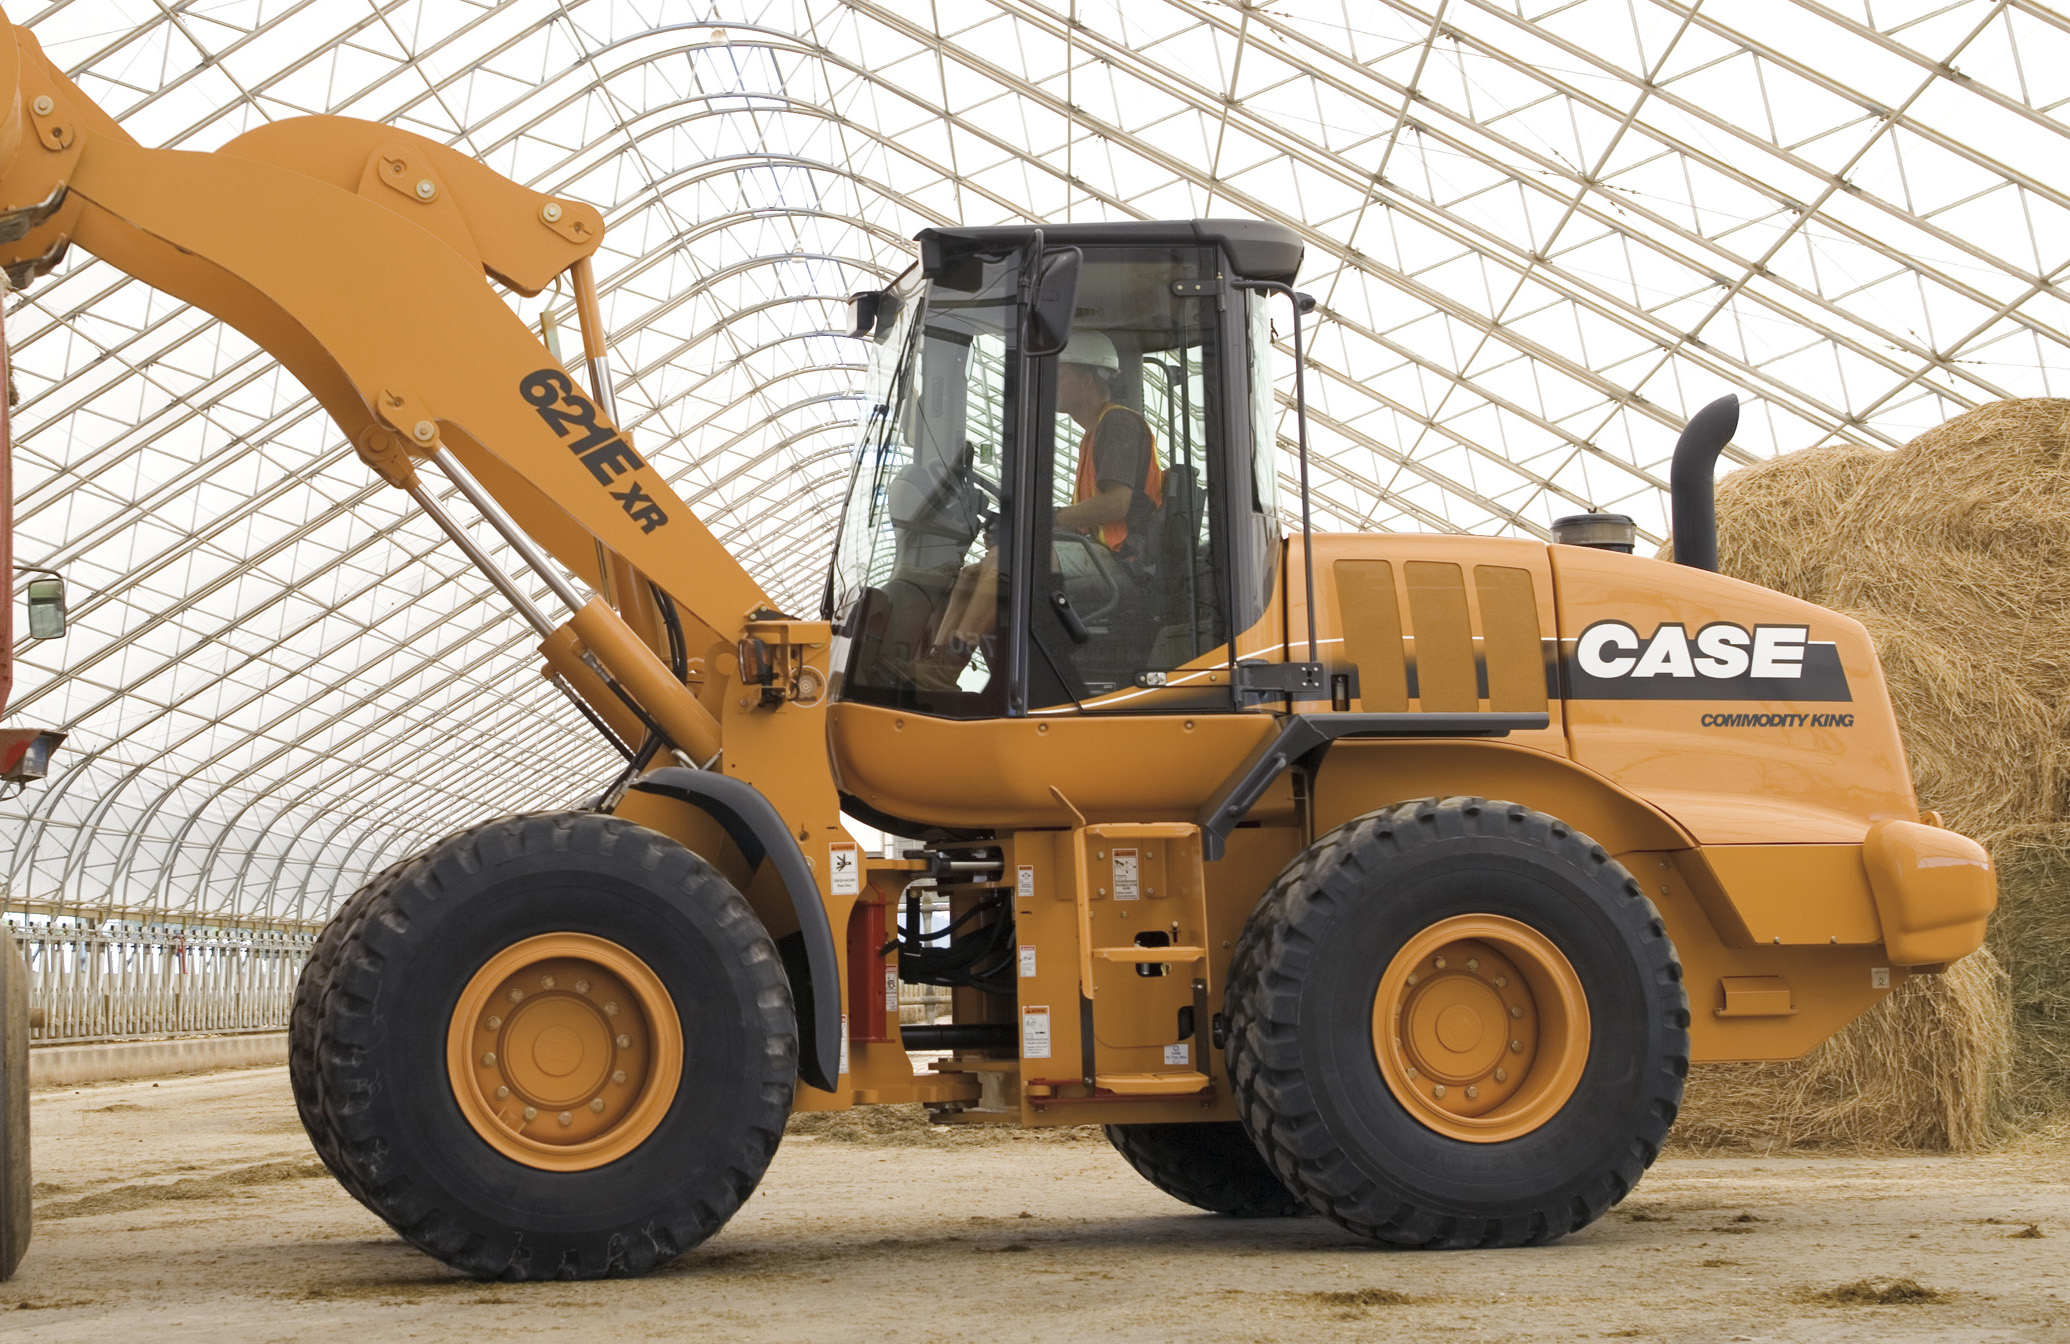 Amazing Case Wheel Loader Pictures & Backgrounds